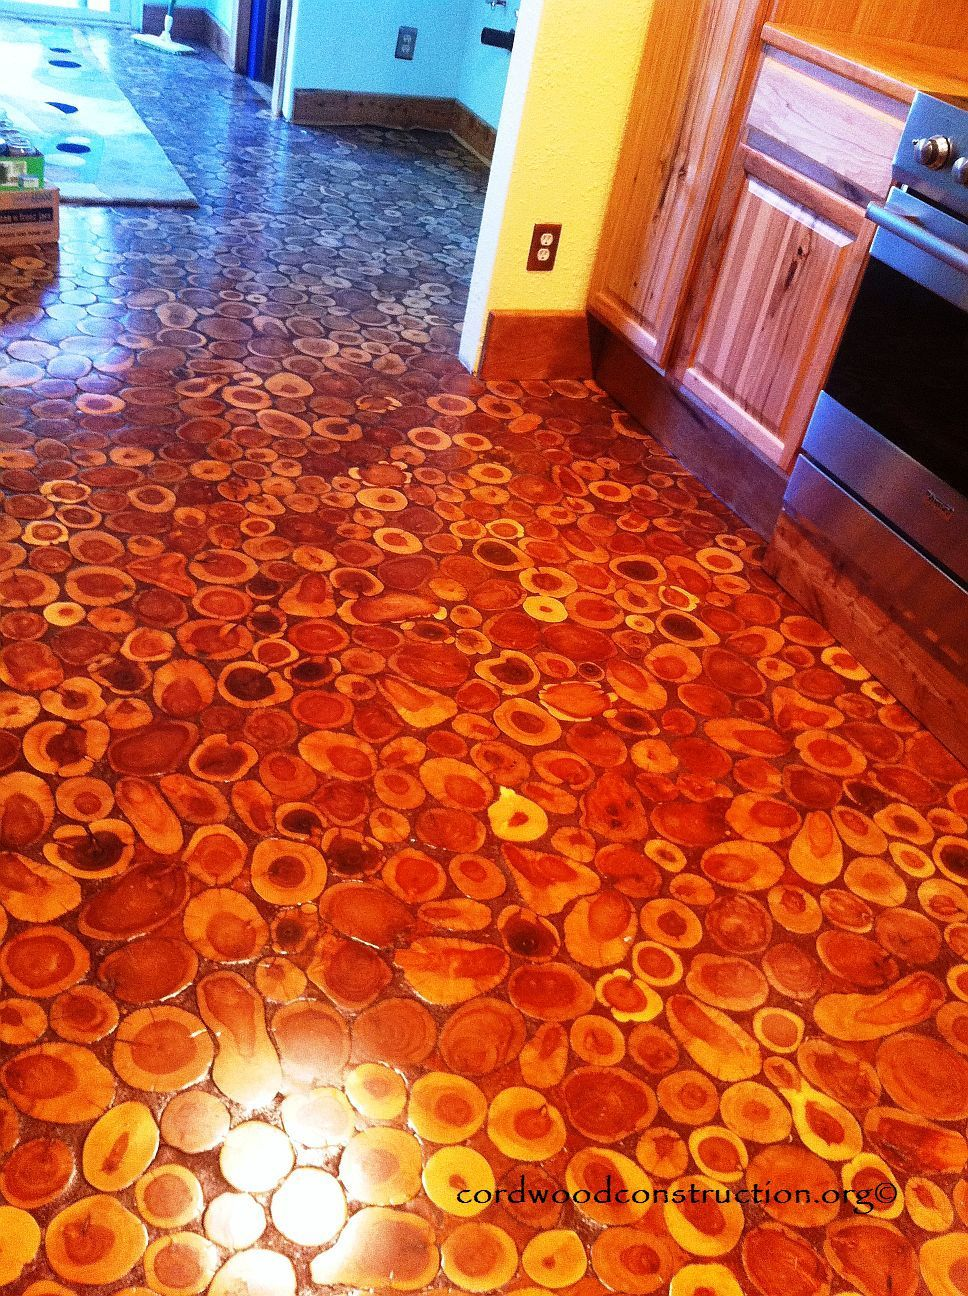 best images about flooring on pinterest clear epoxy resin wall